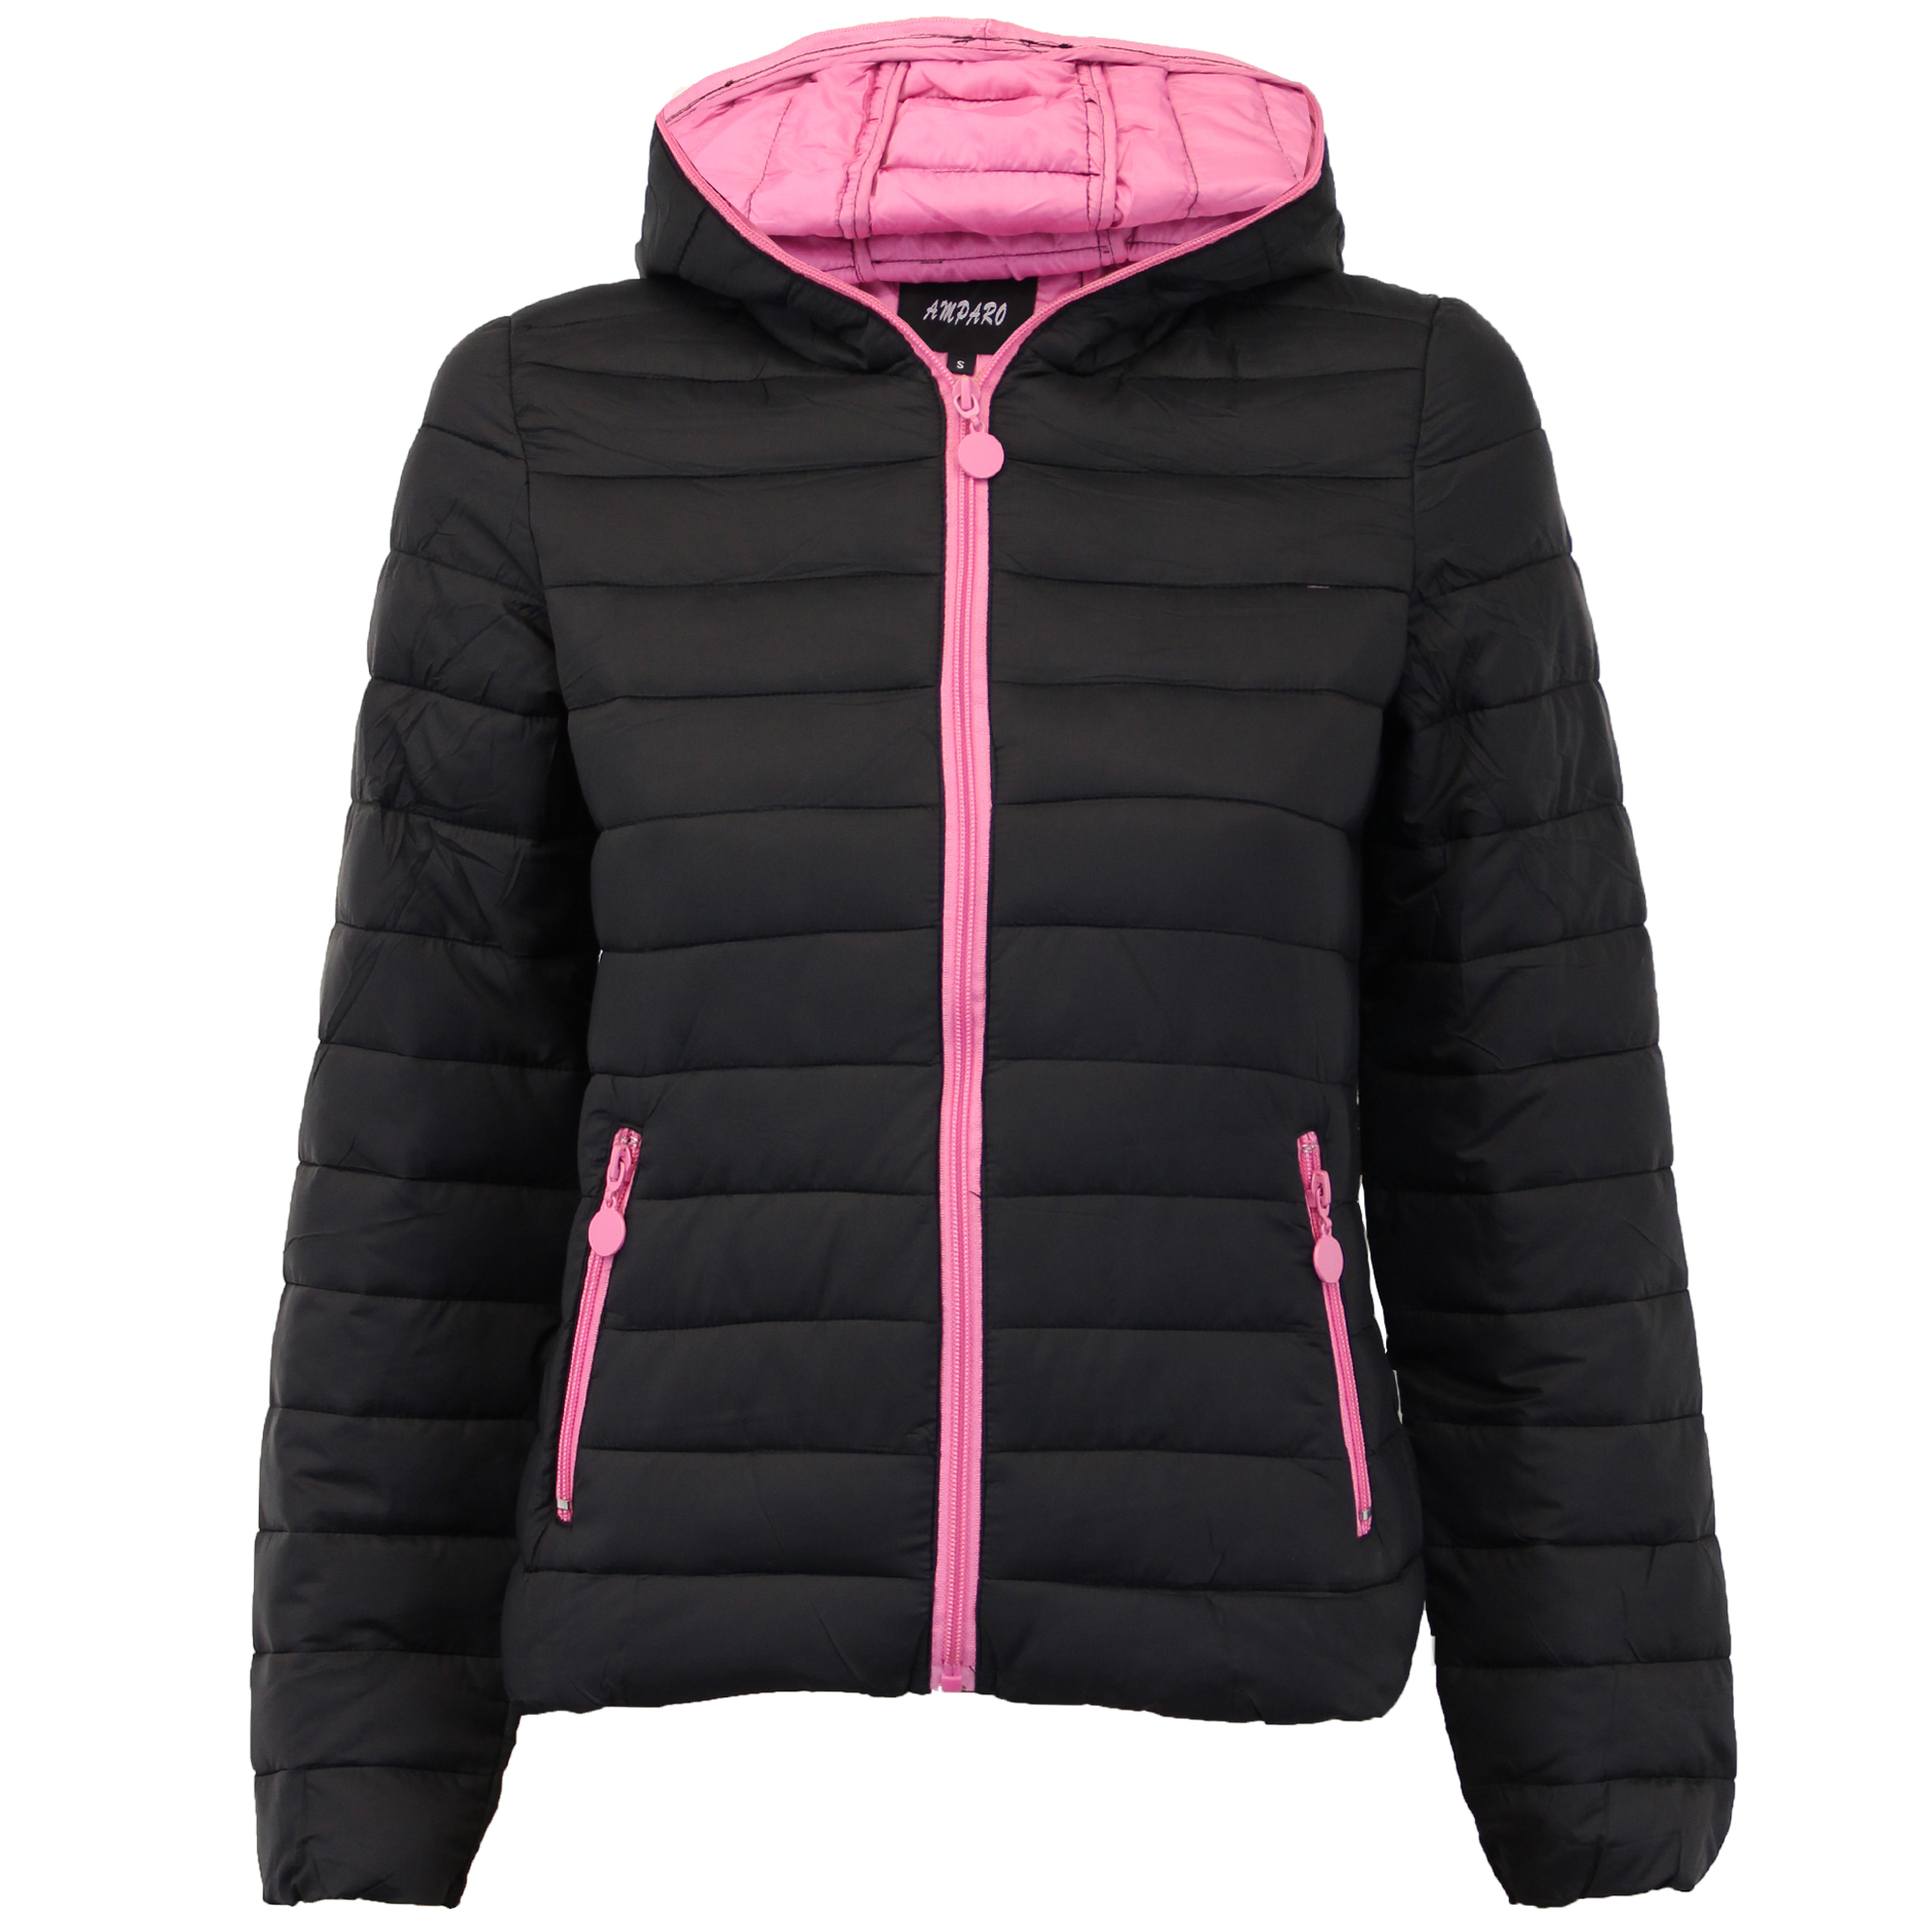 Cheap womens parka coat